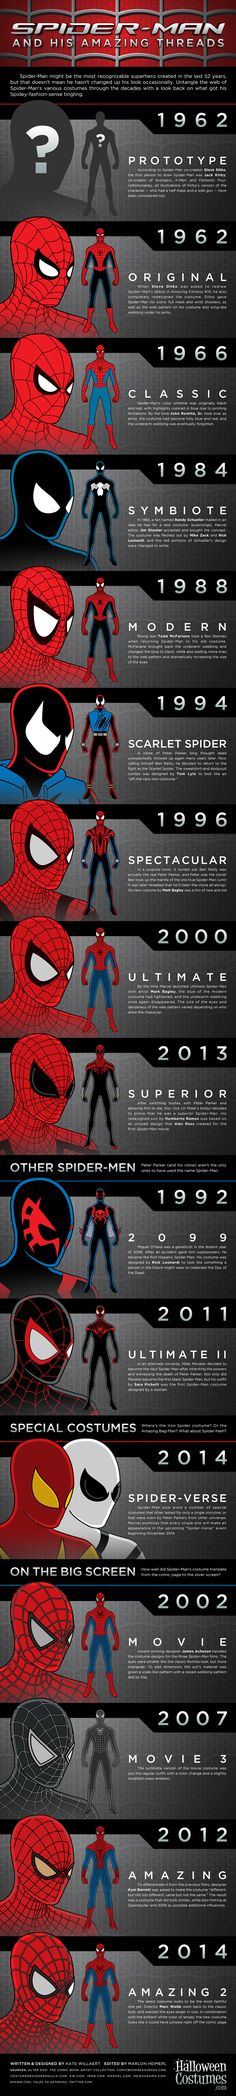 Spider-Man Infographic Costume Evolution 1962-2014 — GeekTyrant